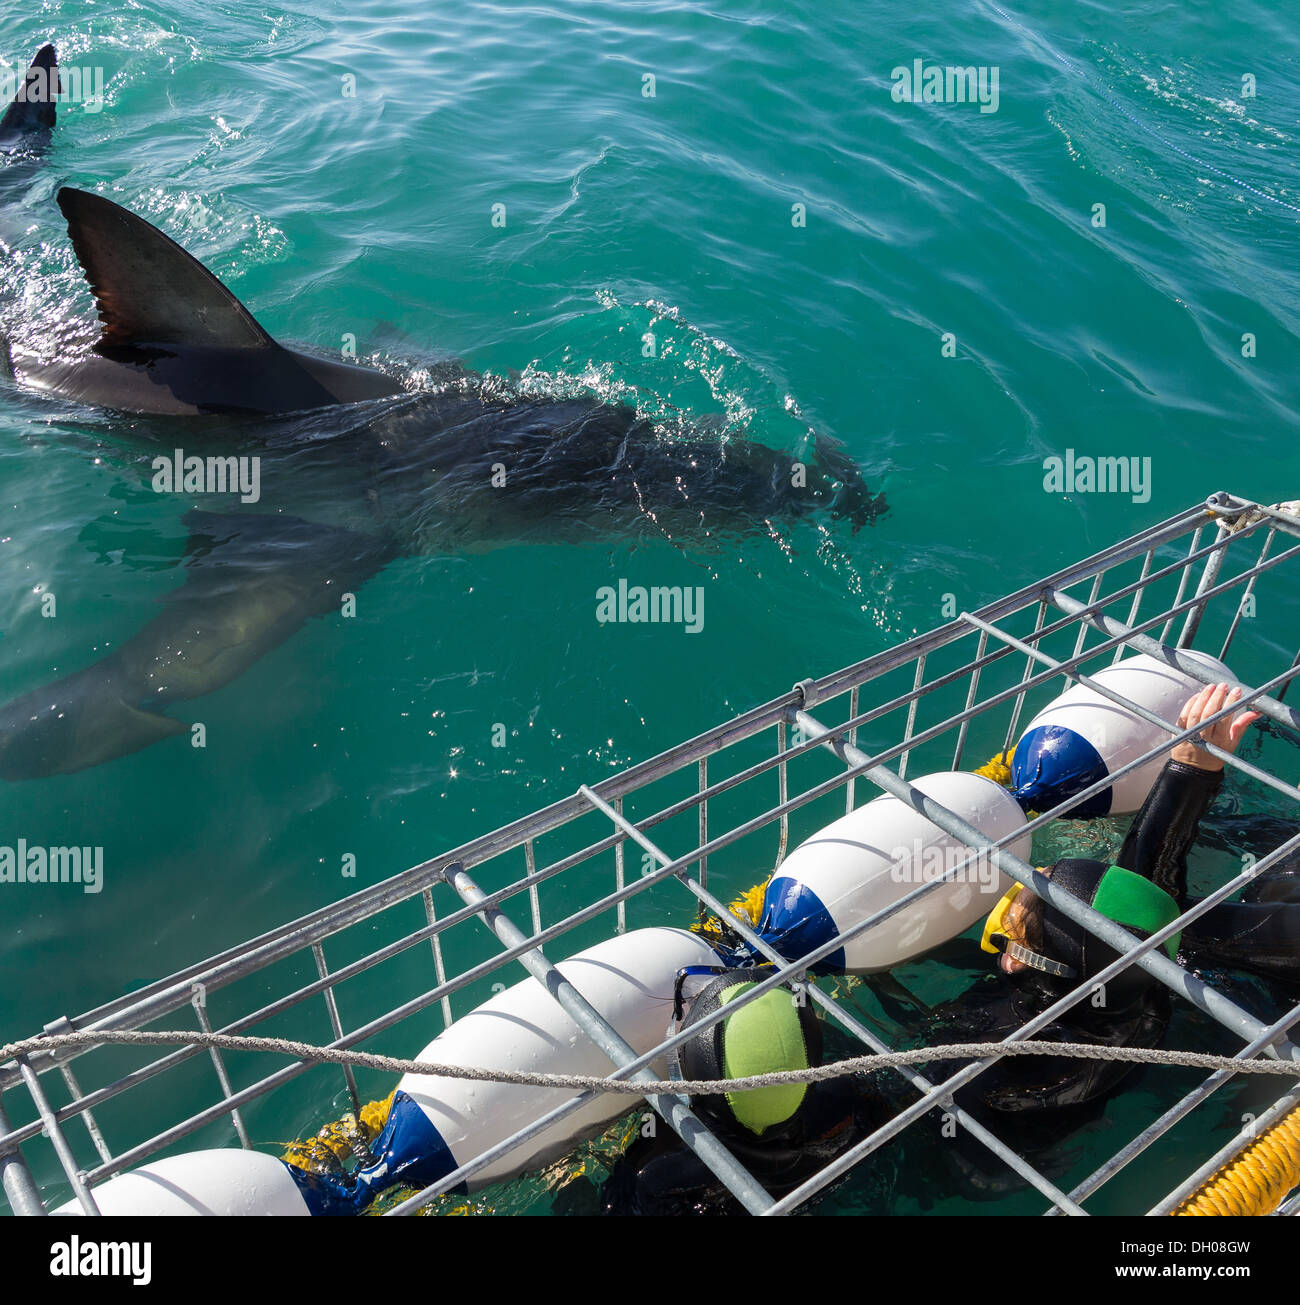 Great White Shark next to diving cage and tourist divers off Gansbaai coastline near Cape Town, South Africa - Stock Image